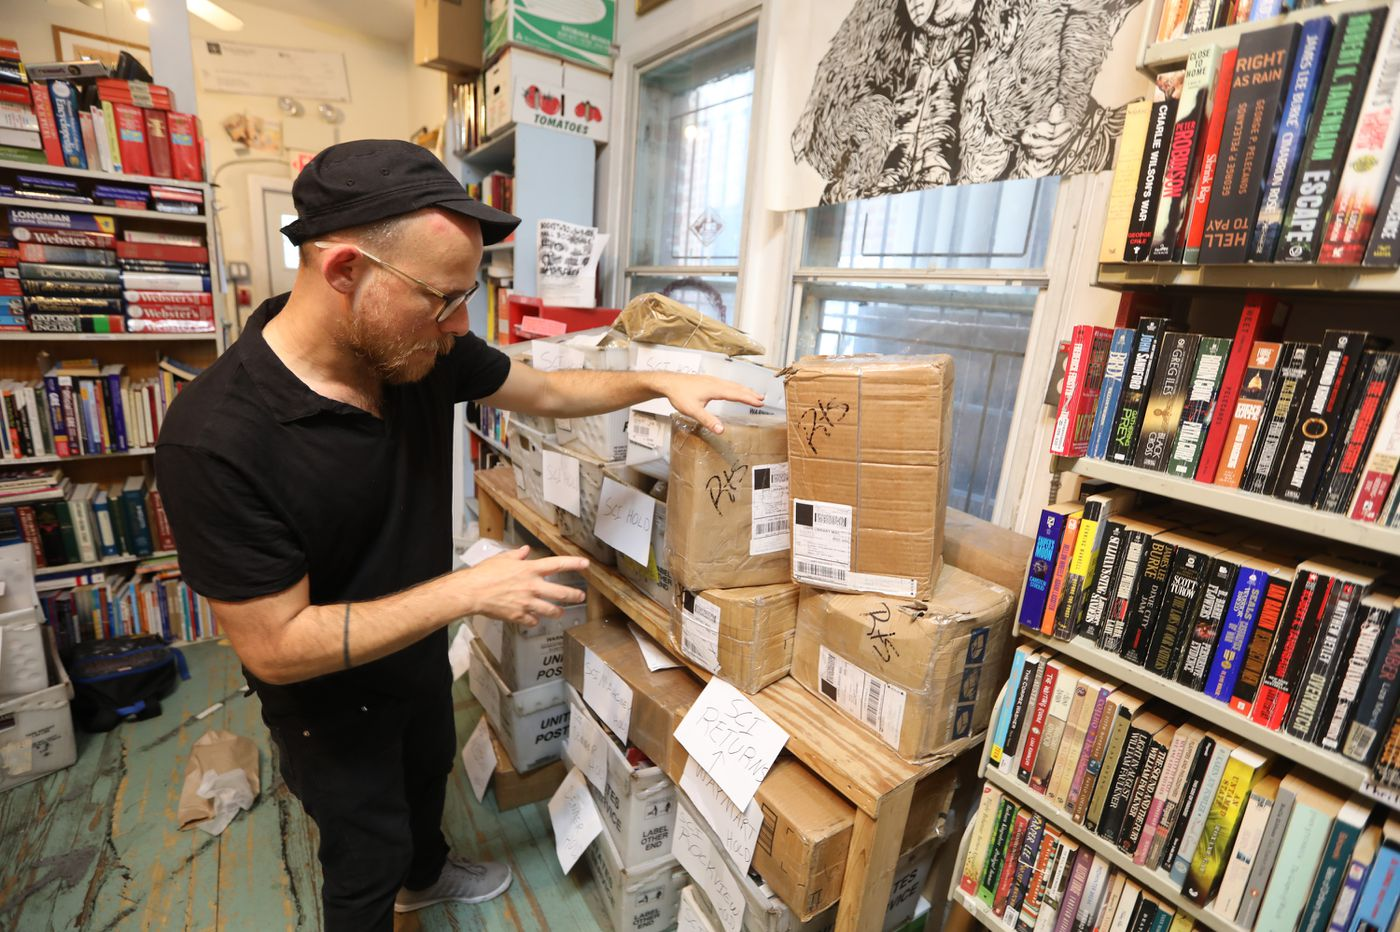 Free dictionaries for all, and other efforts to appease critics of Pa. prison crackdown